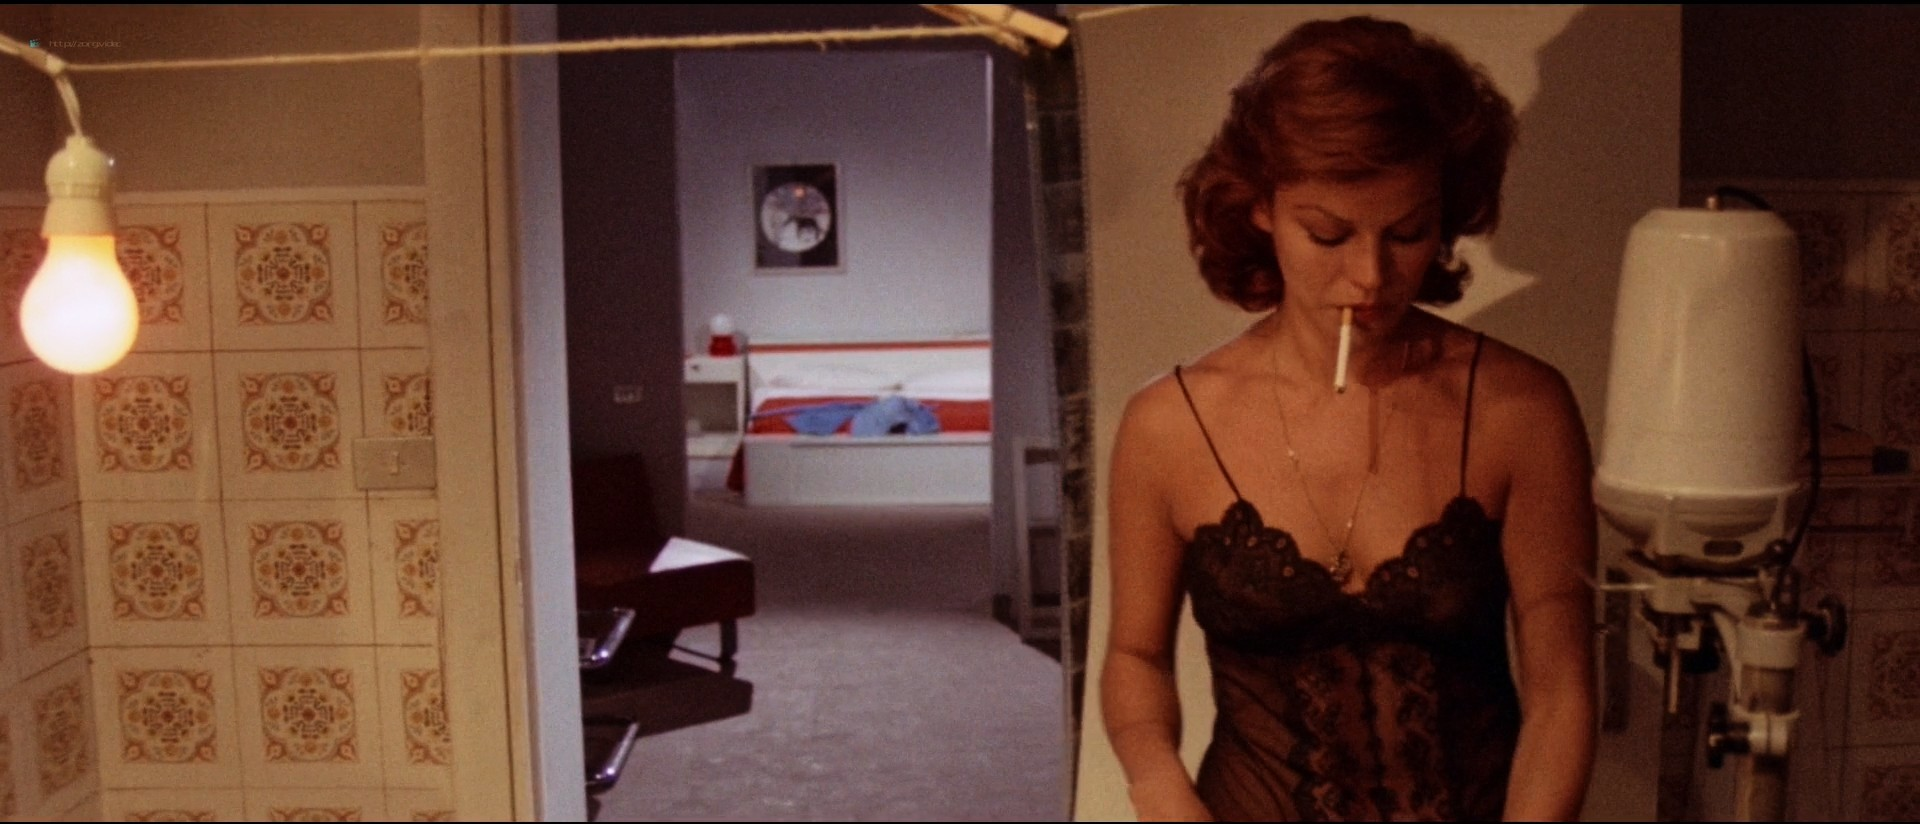 Martine Brochard nude Mirta Miller, Ines Pellegrini nude too - Eyeball (IT-1975) 1080p BluRay (9)